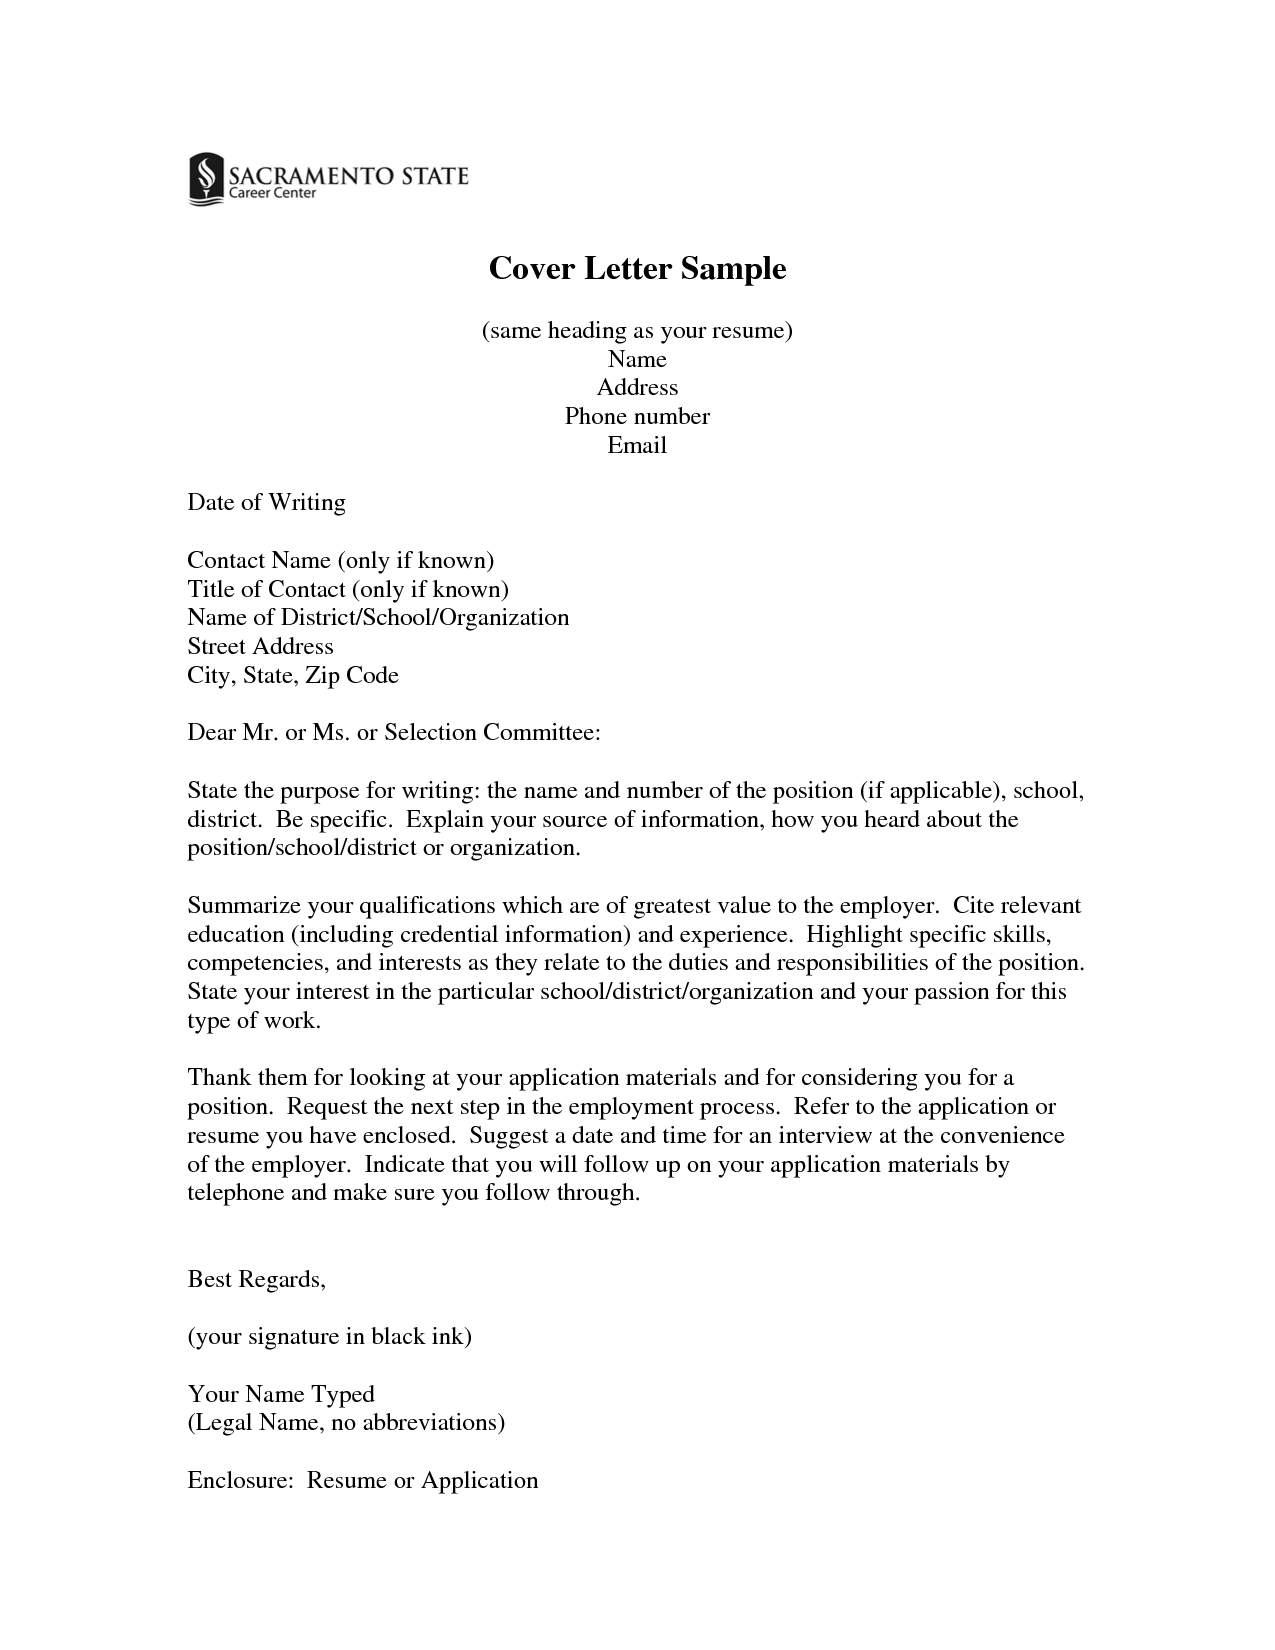 Cover Letter Address Enchanting Same Cover Letters For Resume  Cover Letter Sample Same Heading Inspiration Design